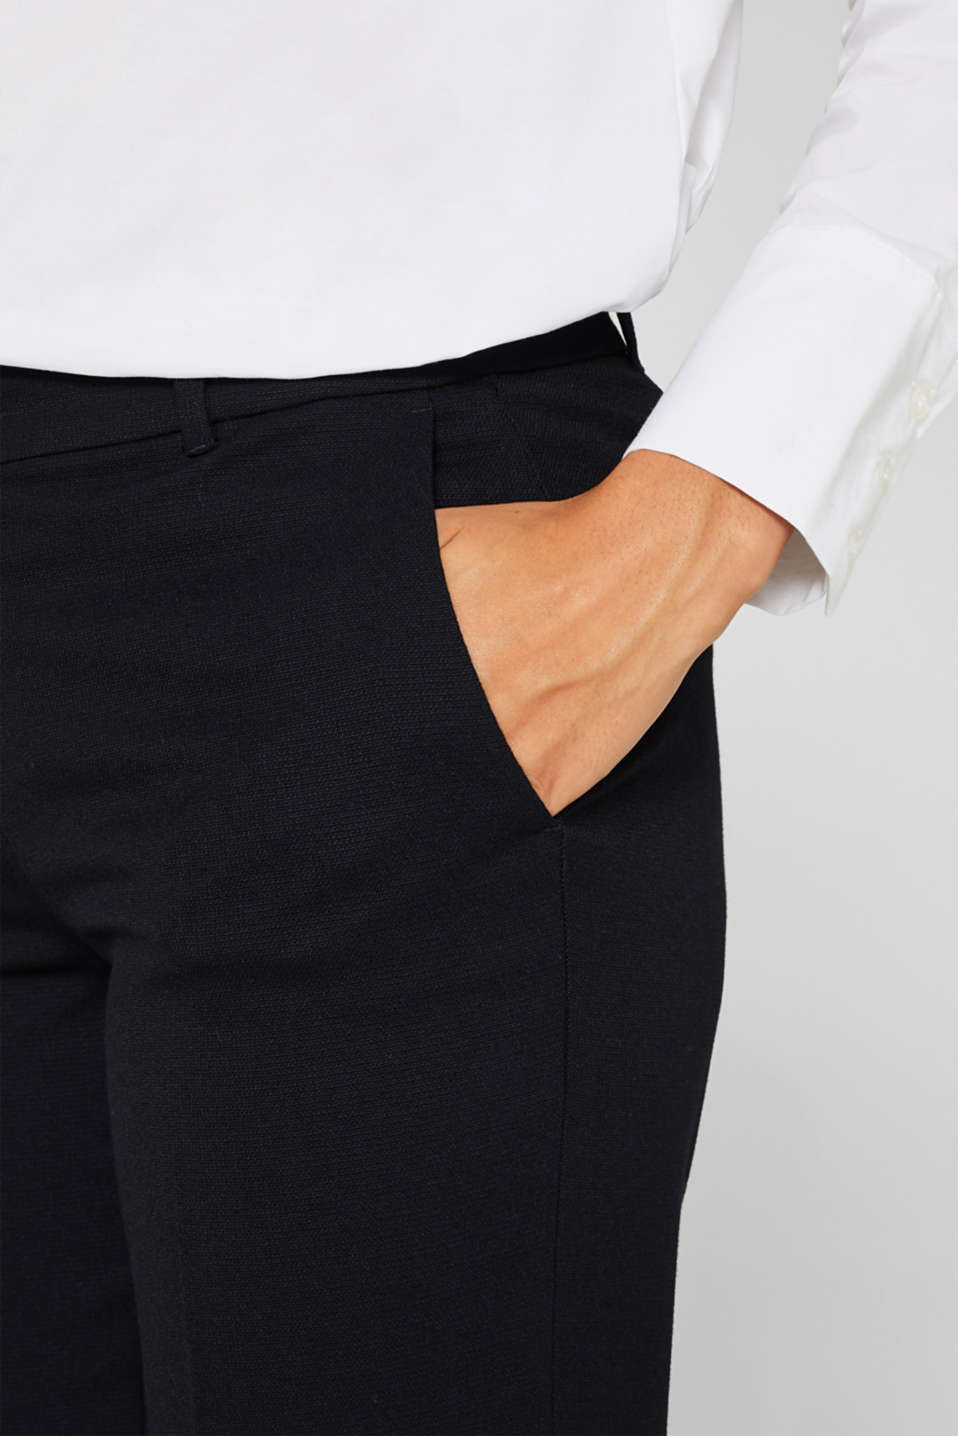 TONE-IN-TONE STRUCTURE Mix + Match Stretch Trousers, NAVY, detail image number 2